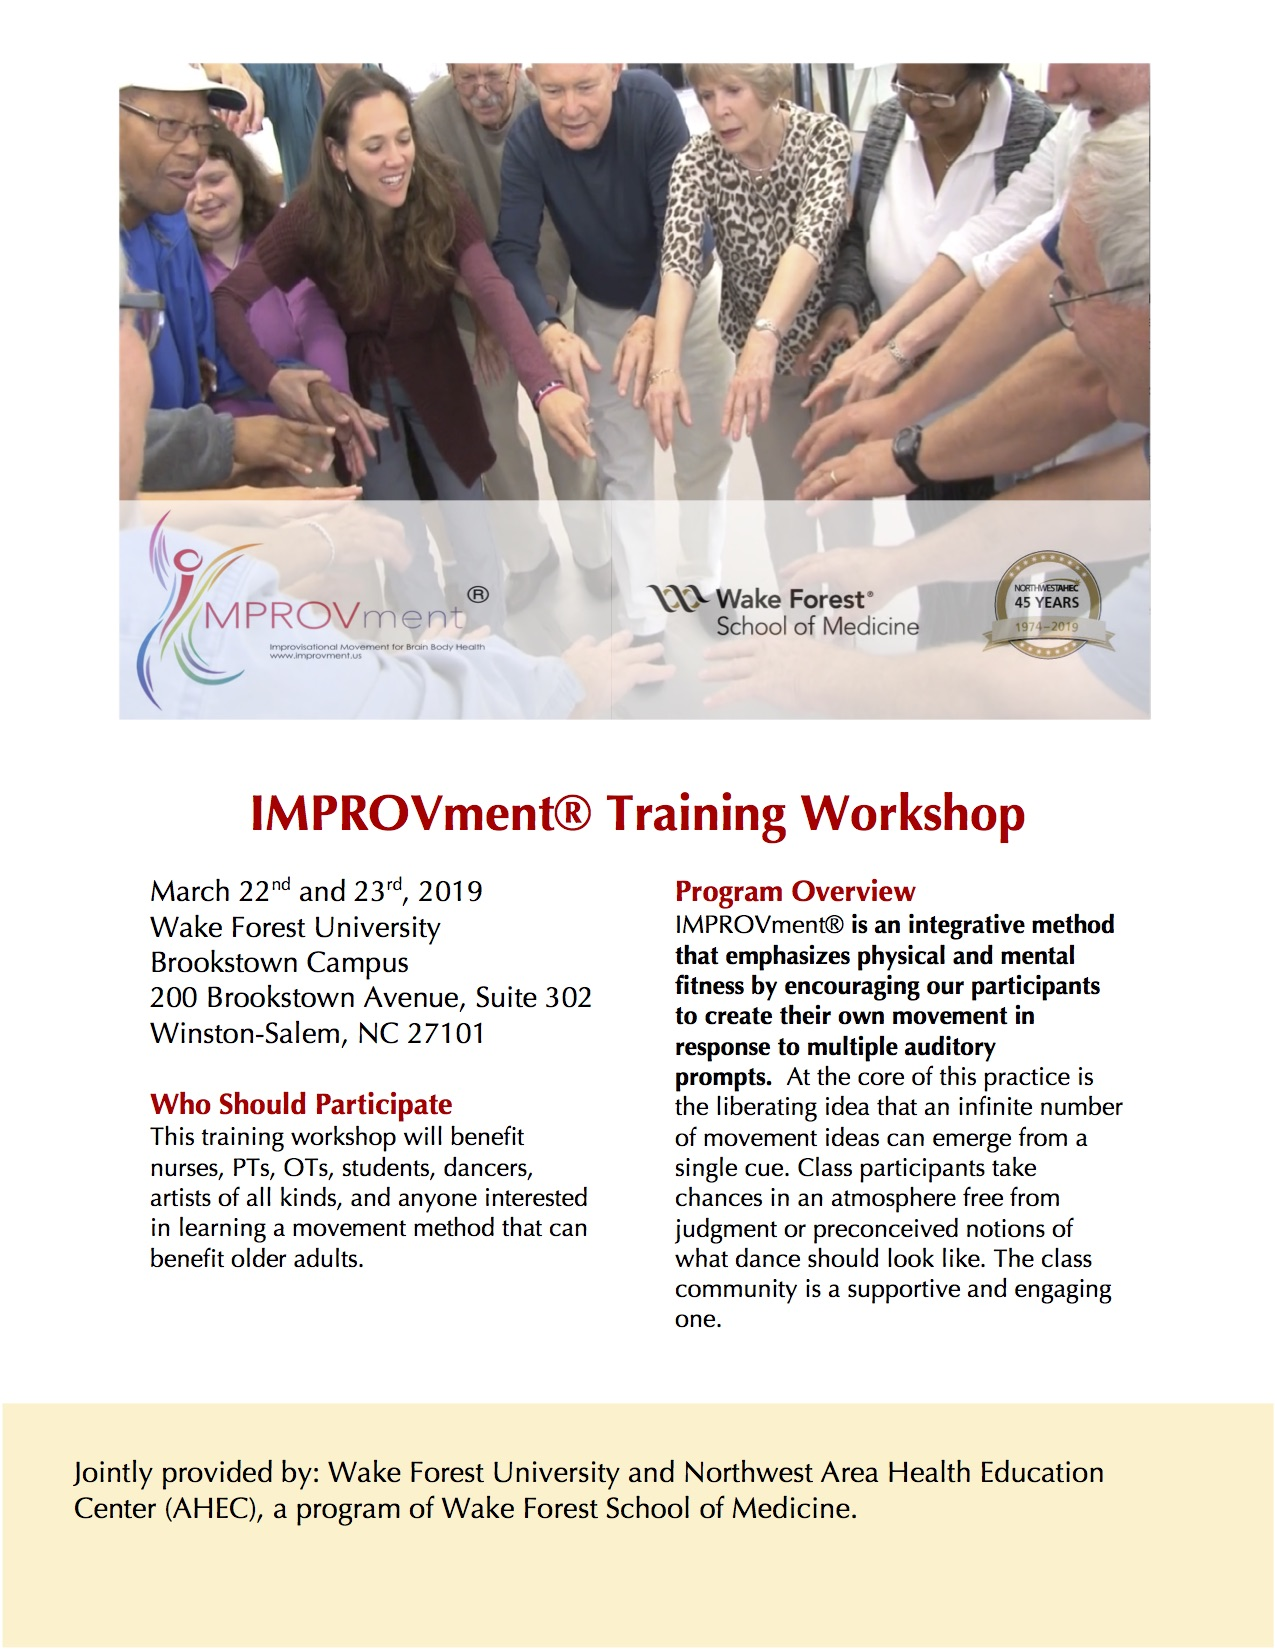 IMPROVment Training Flyer 1.jpg